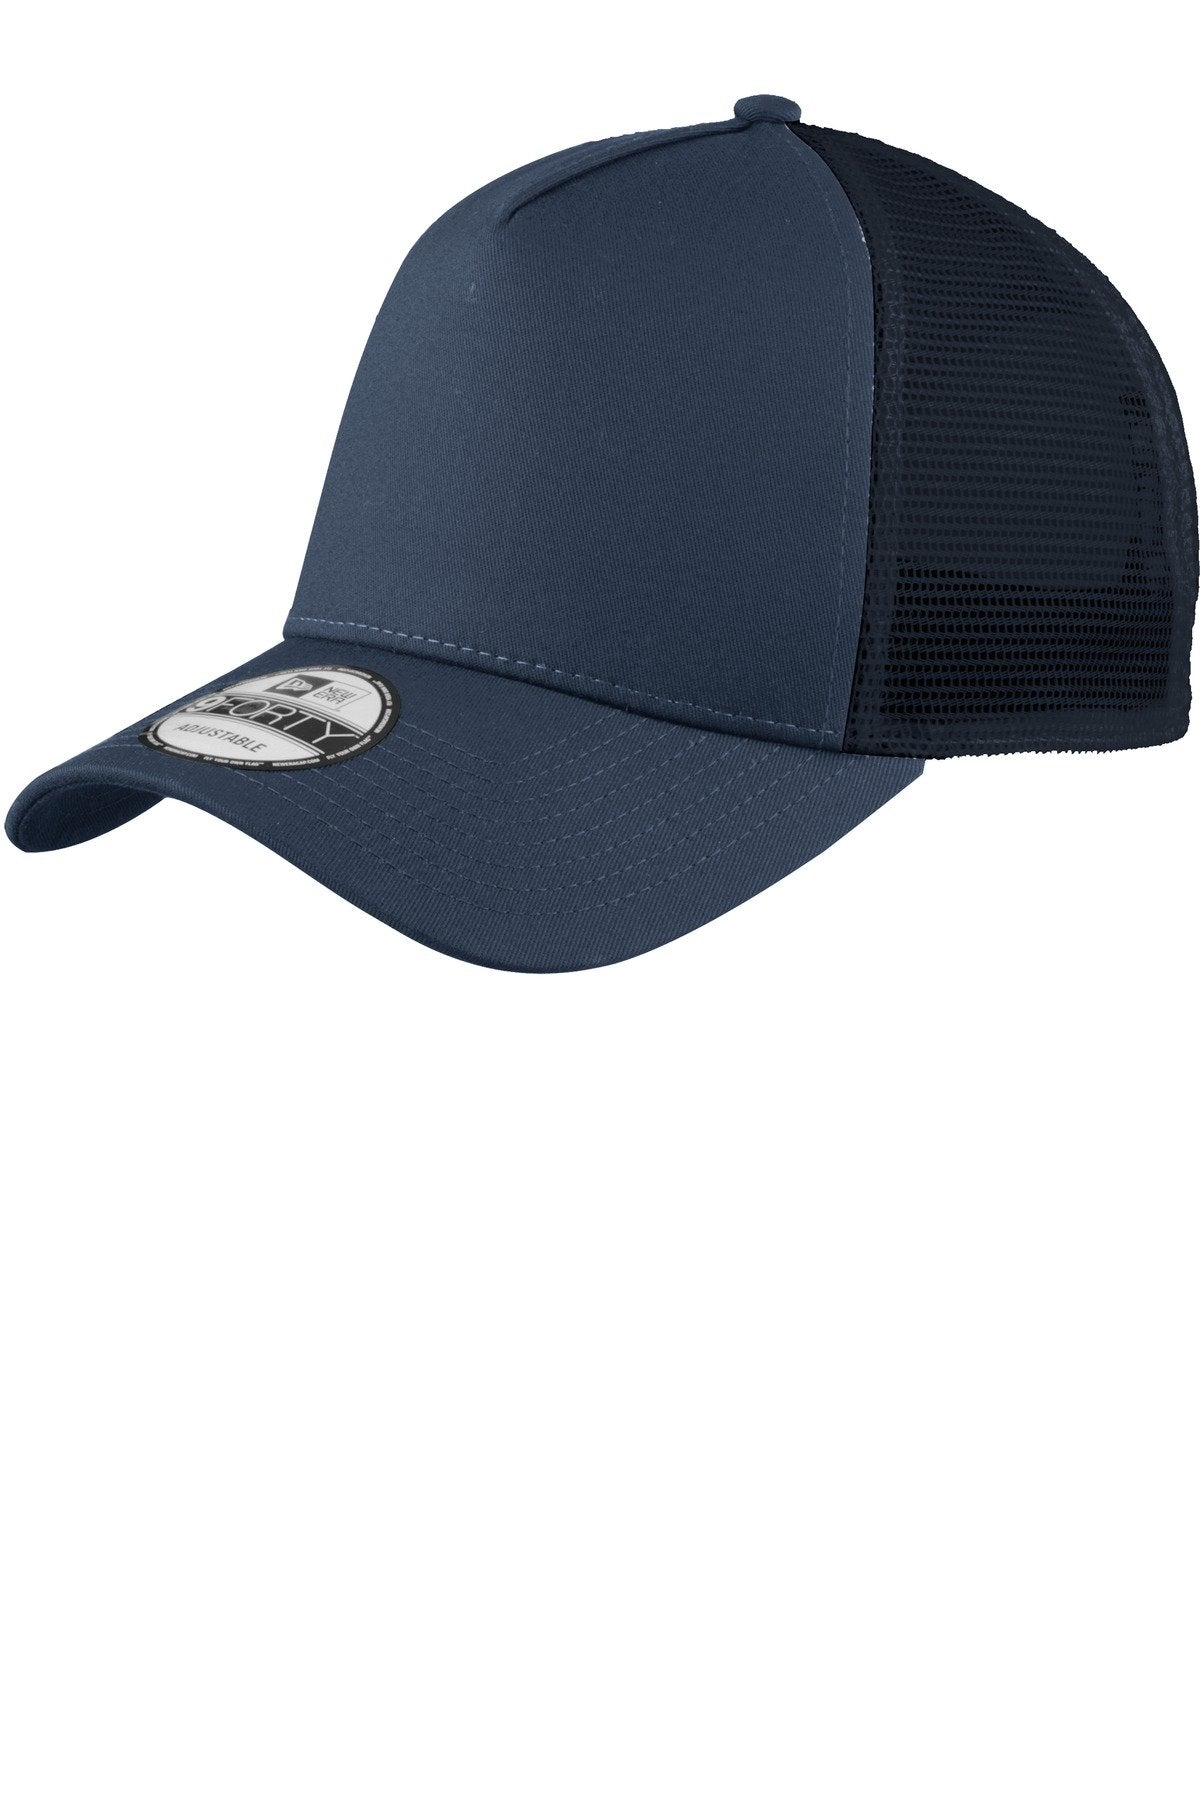 Deep Navy/ Deep Navy - New Era NE205